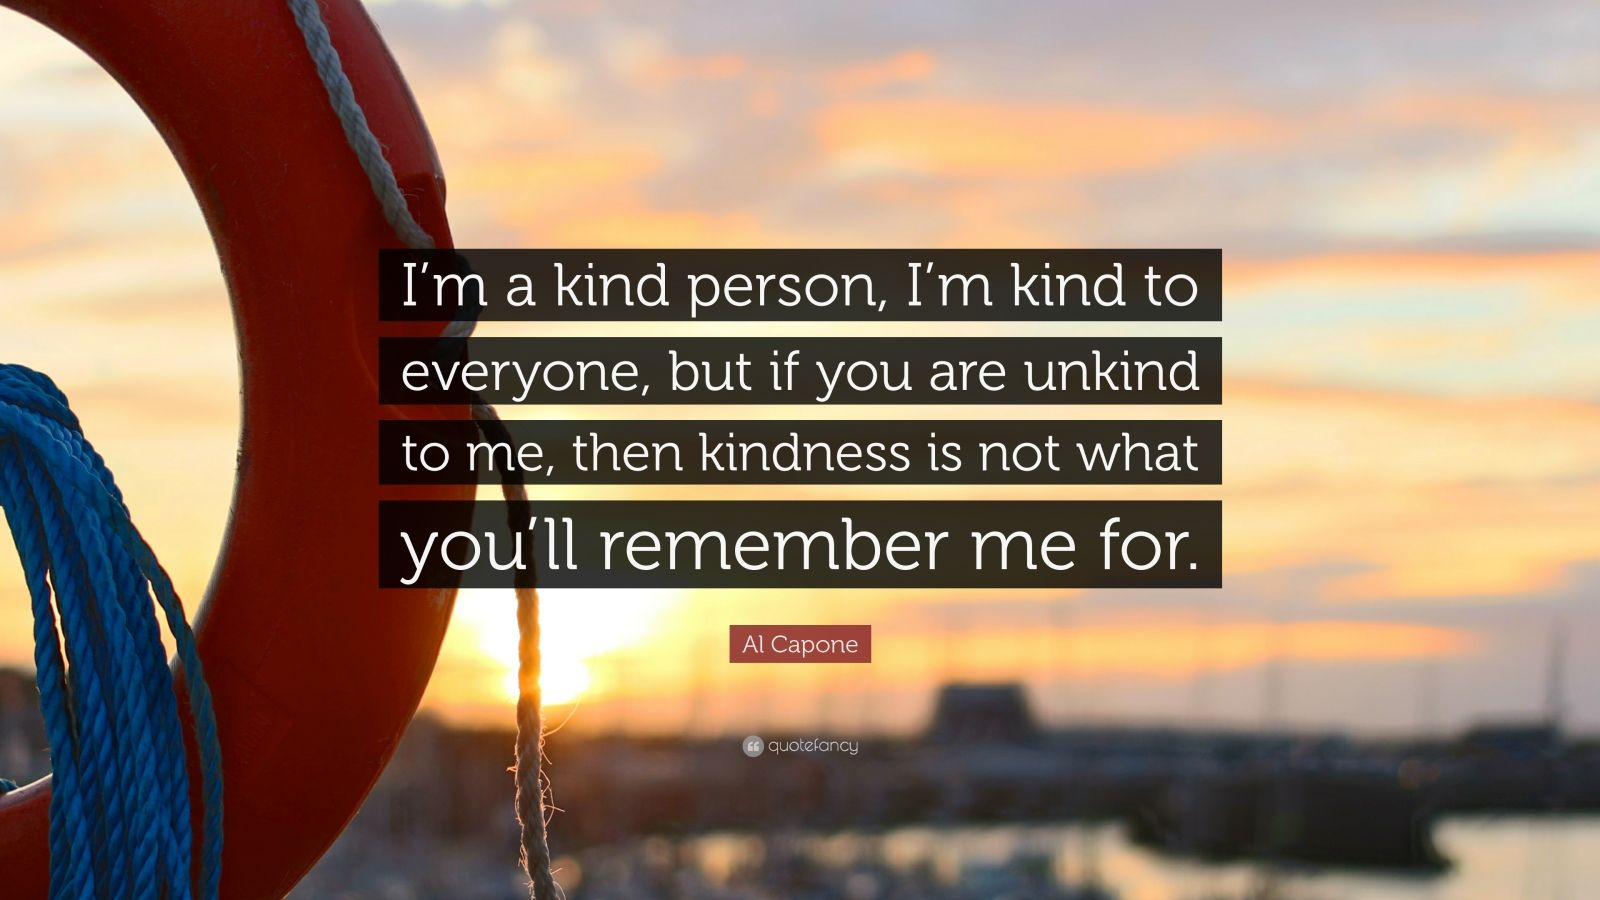 """Al Capone Quote: """"I'm a kind person, I'm kind to everyone, but if you are unkind to me, then kindness is not what you'll remember me for."""""""